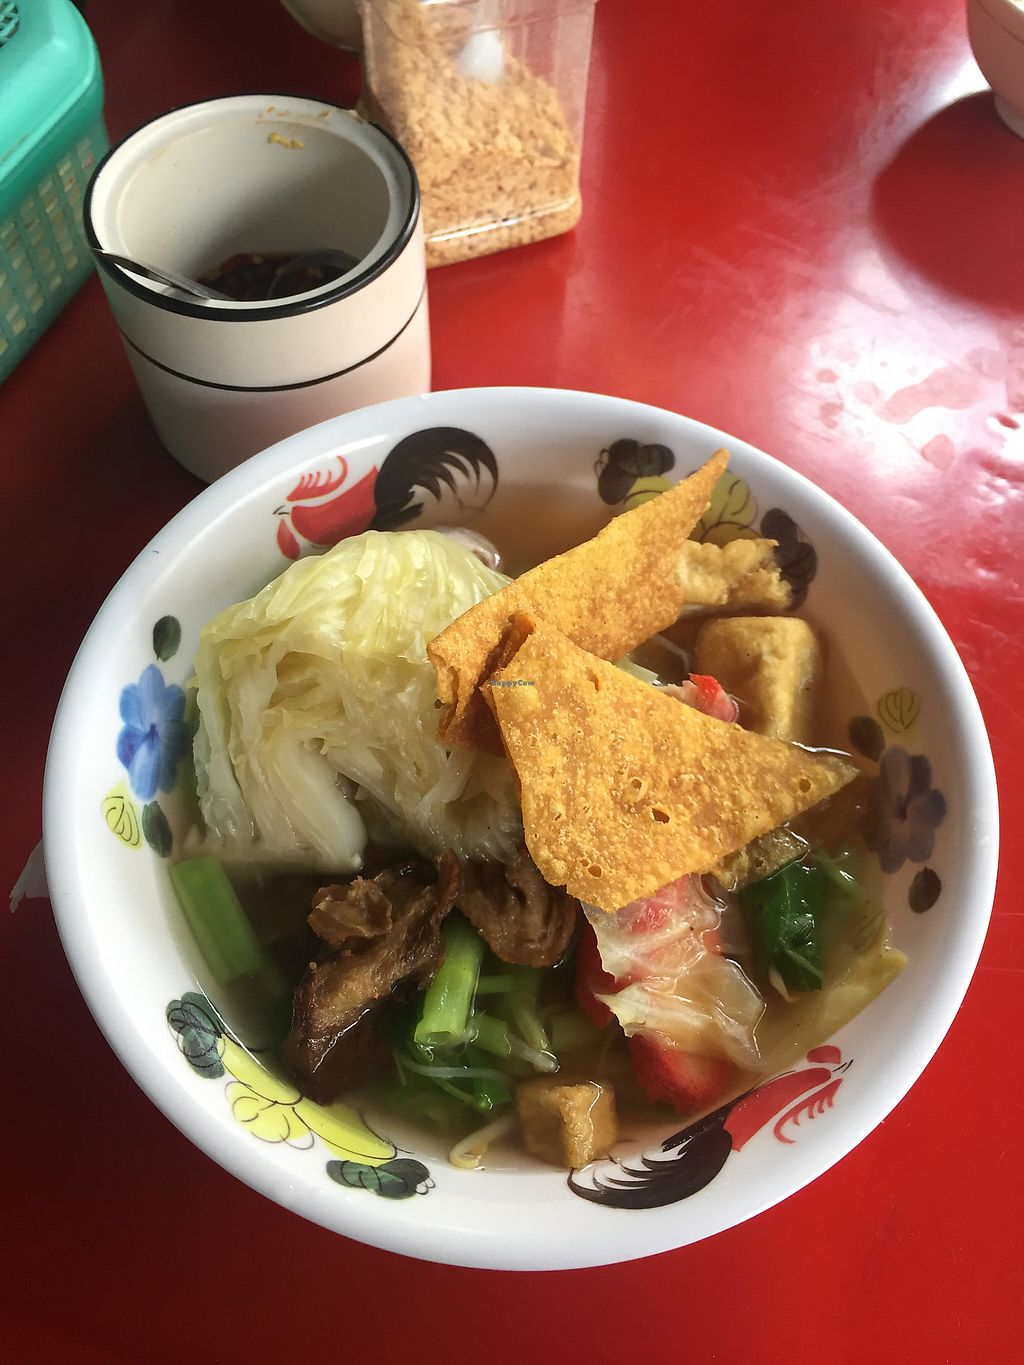 """Photo of Pan Road - Vegan Food Cart  by <a href=""""/members/profile/Bobozmom"""">Bobozmom</a> <br/>another day another bowl of noodle soup <br/> May 20, 2017  - <a href='/contact/abuse/image/88695/260543'>Report</a>"""